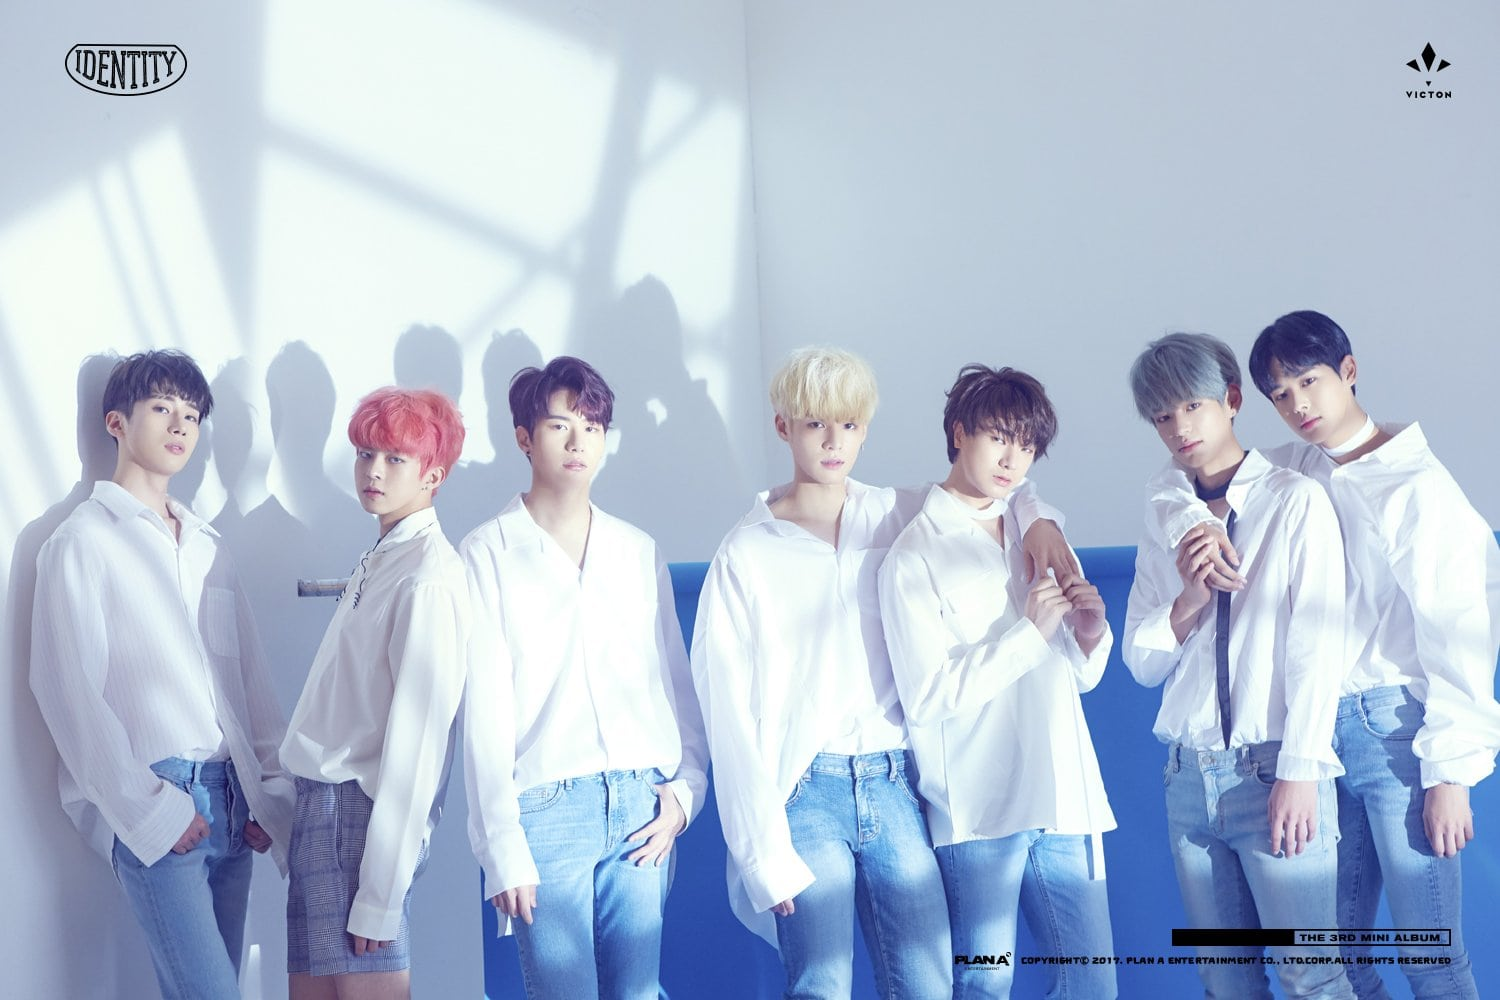 VICTON Announces First Comeback Schedule with Han Seung Woo